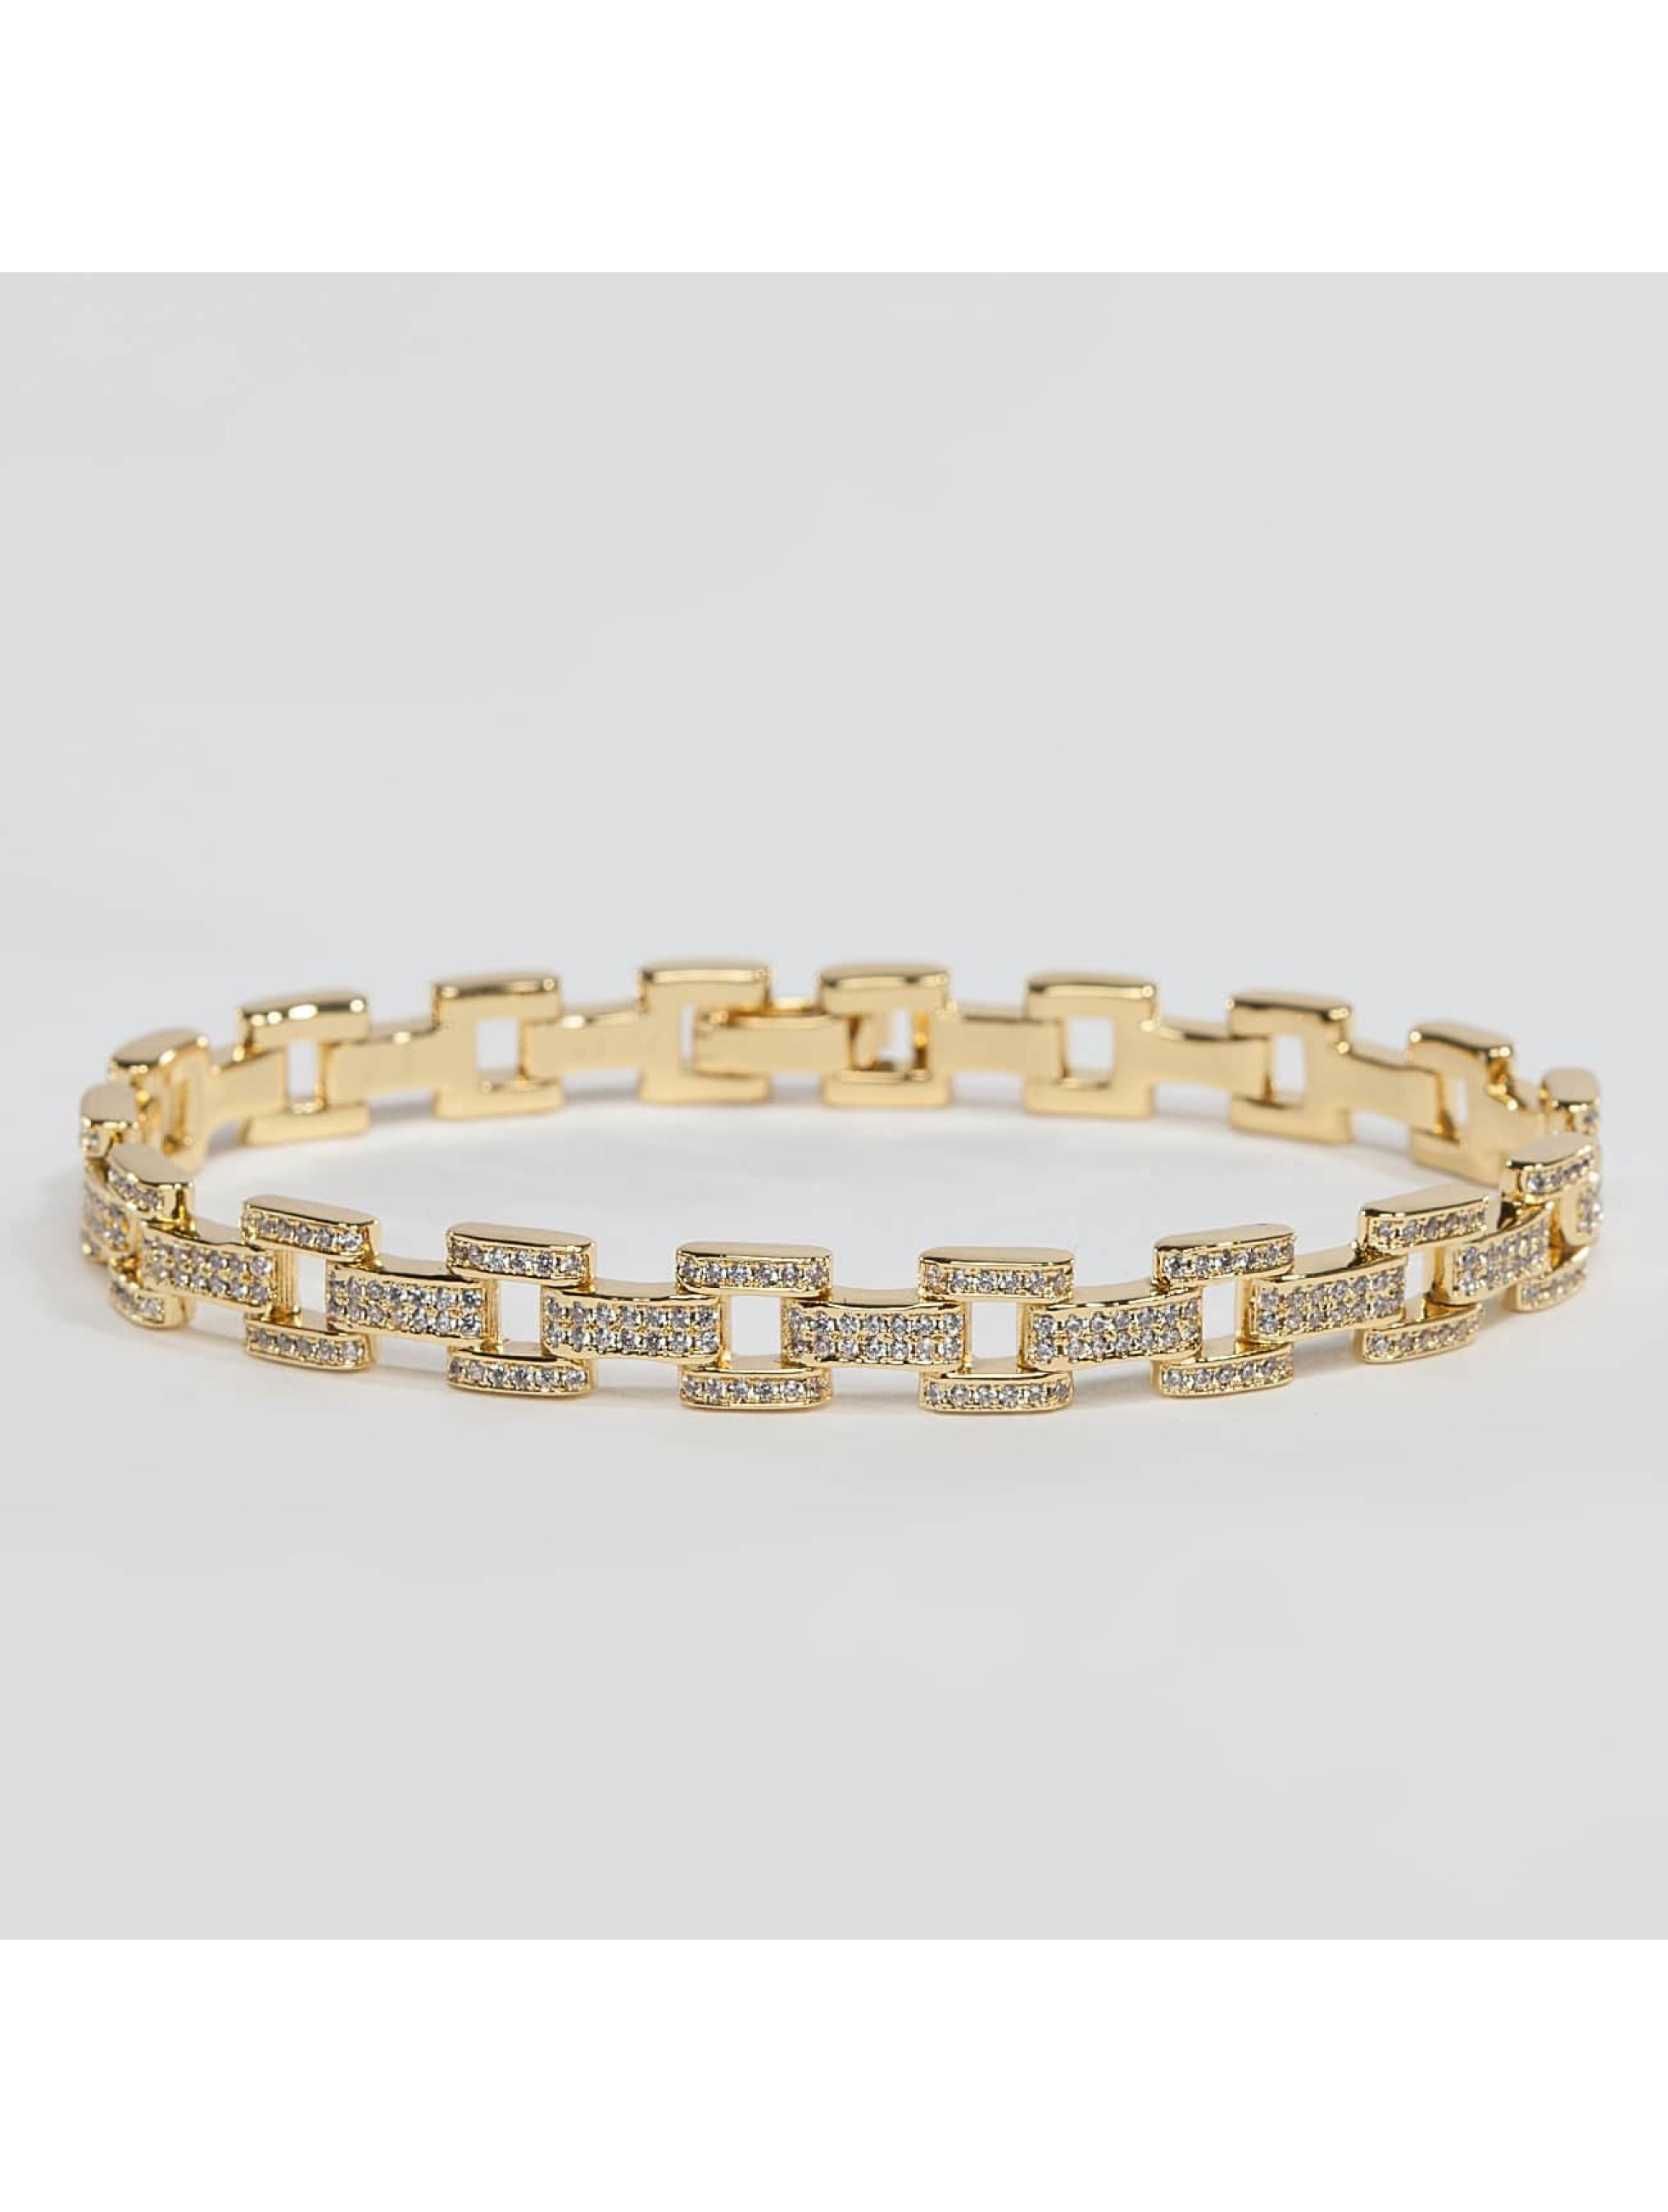 KING ICE Bracelet Gold_Plated The Link or